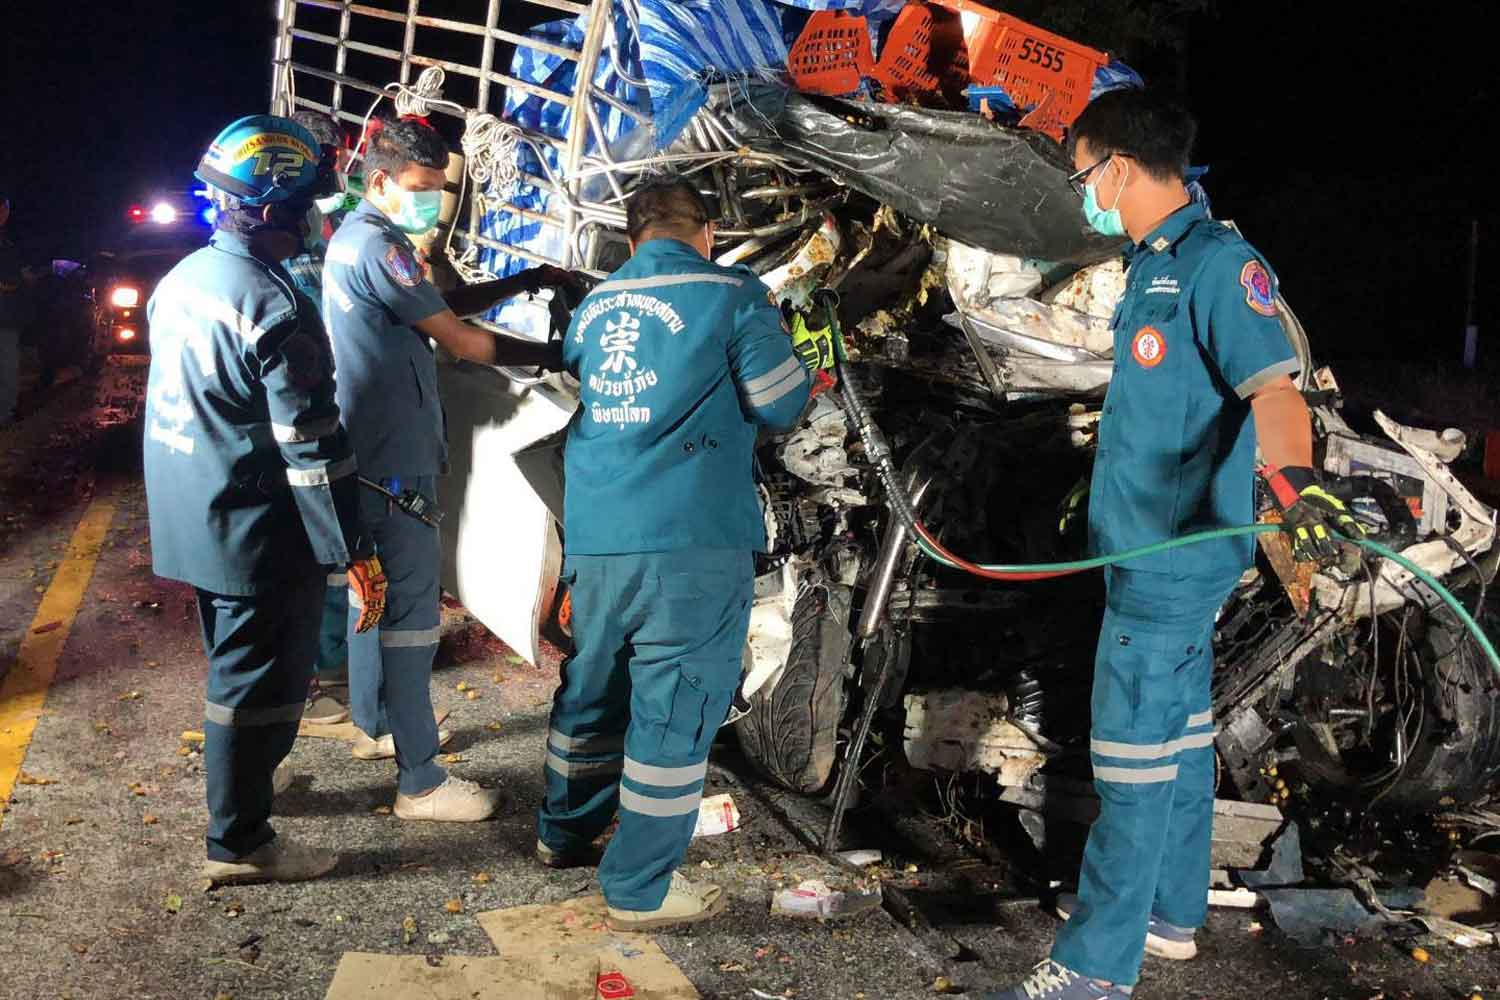 Rescuers examine one of the two pickup trucks that collided head-on on Highway 11 in Phitsanulok on Monday morning. Both drivers were trapped in their vehicles. One was killed and the other severely injured. (Photo: Chinnawat Singha)